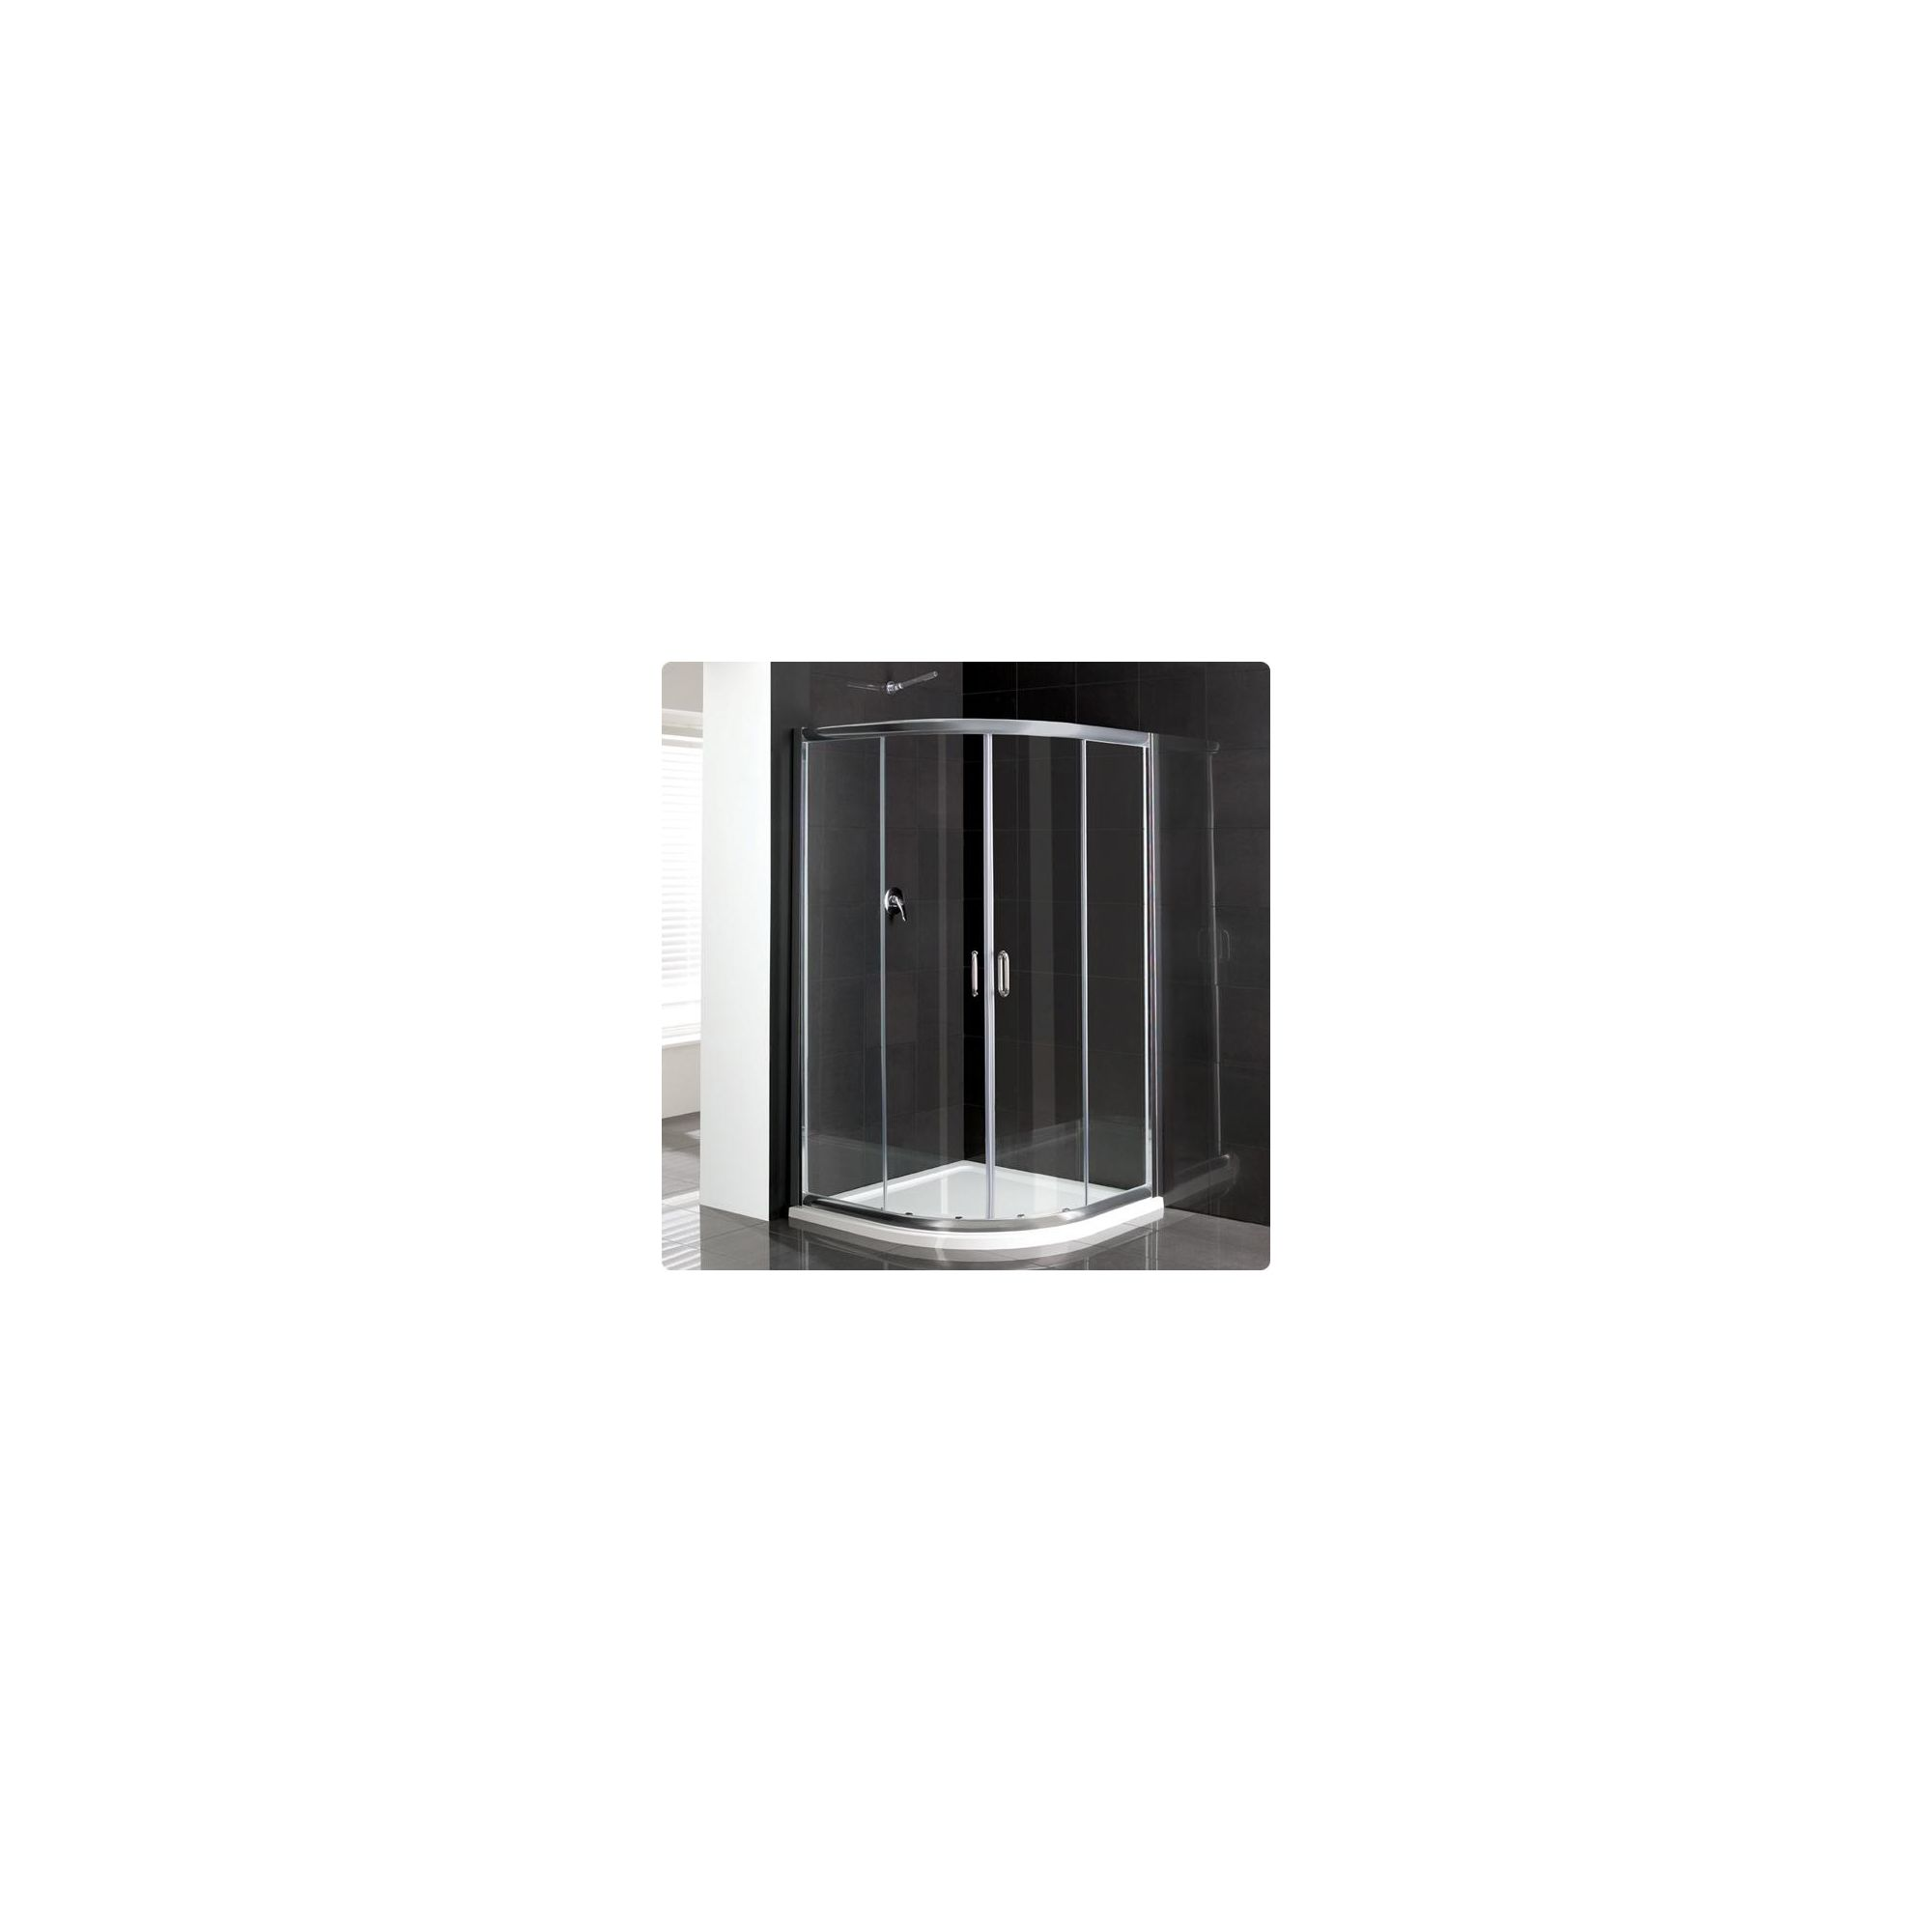 Duchy Elite Silver Quadrant Shower Enclosure 900mm, Standard Tray, 6mm Glass at Tesco Direct